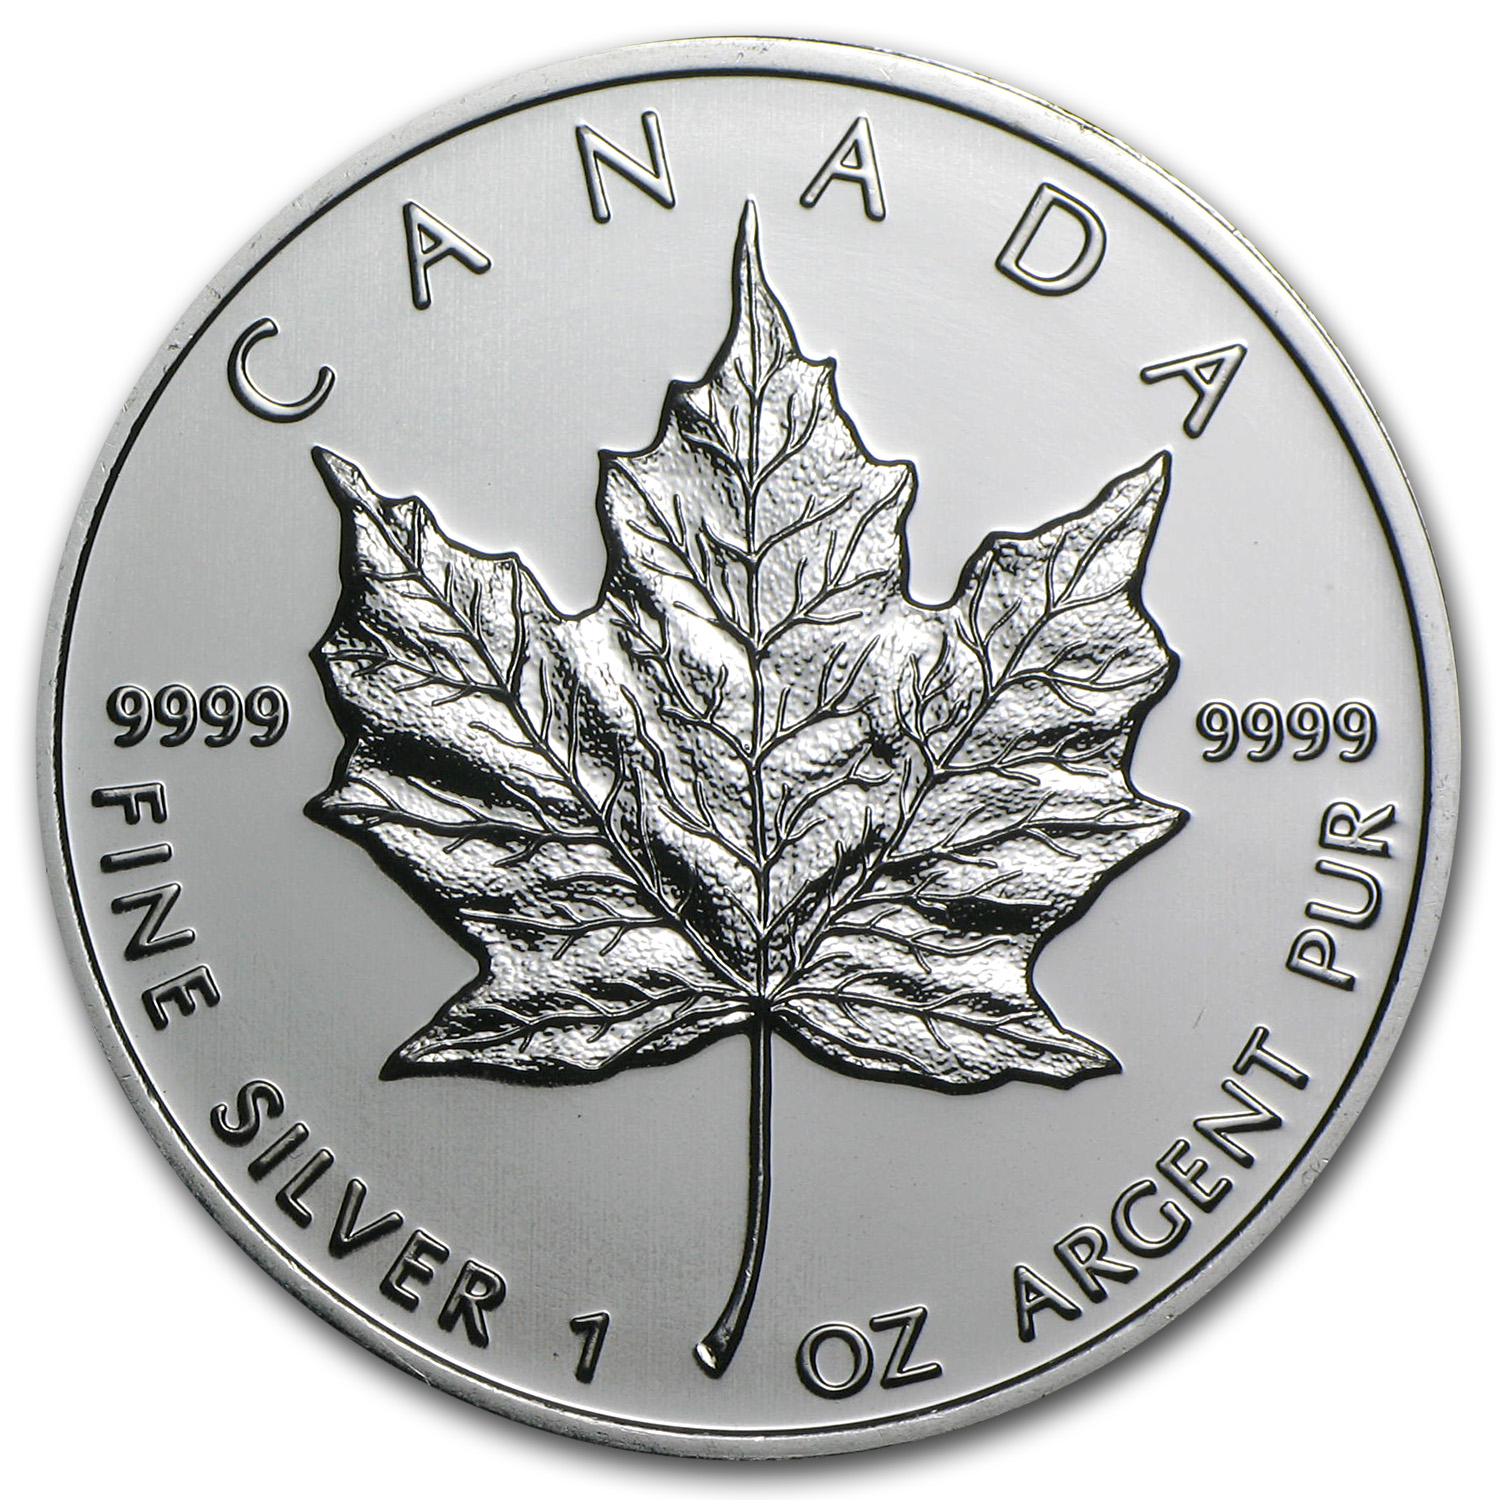 2009 1 oz Silver Canadian Maple Leaf (Brilliant Uncirculated)